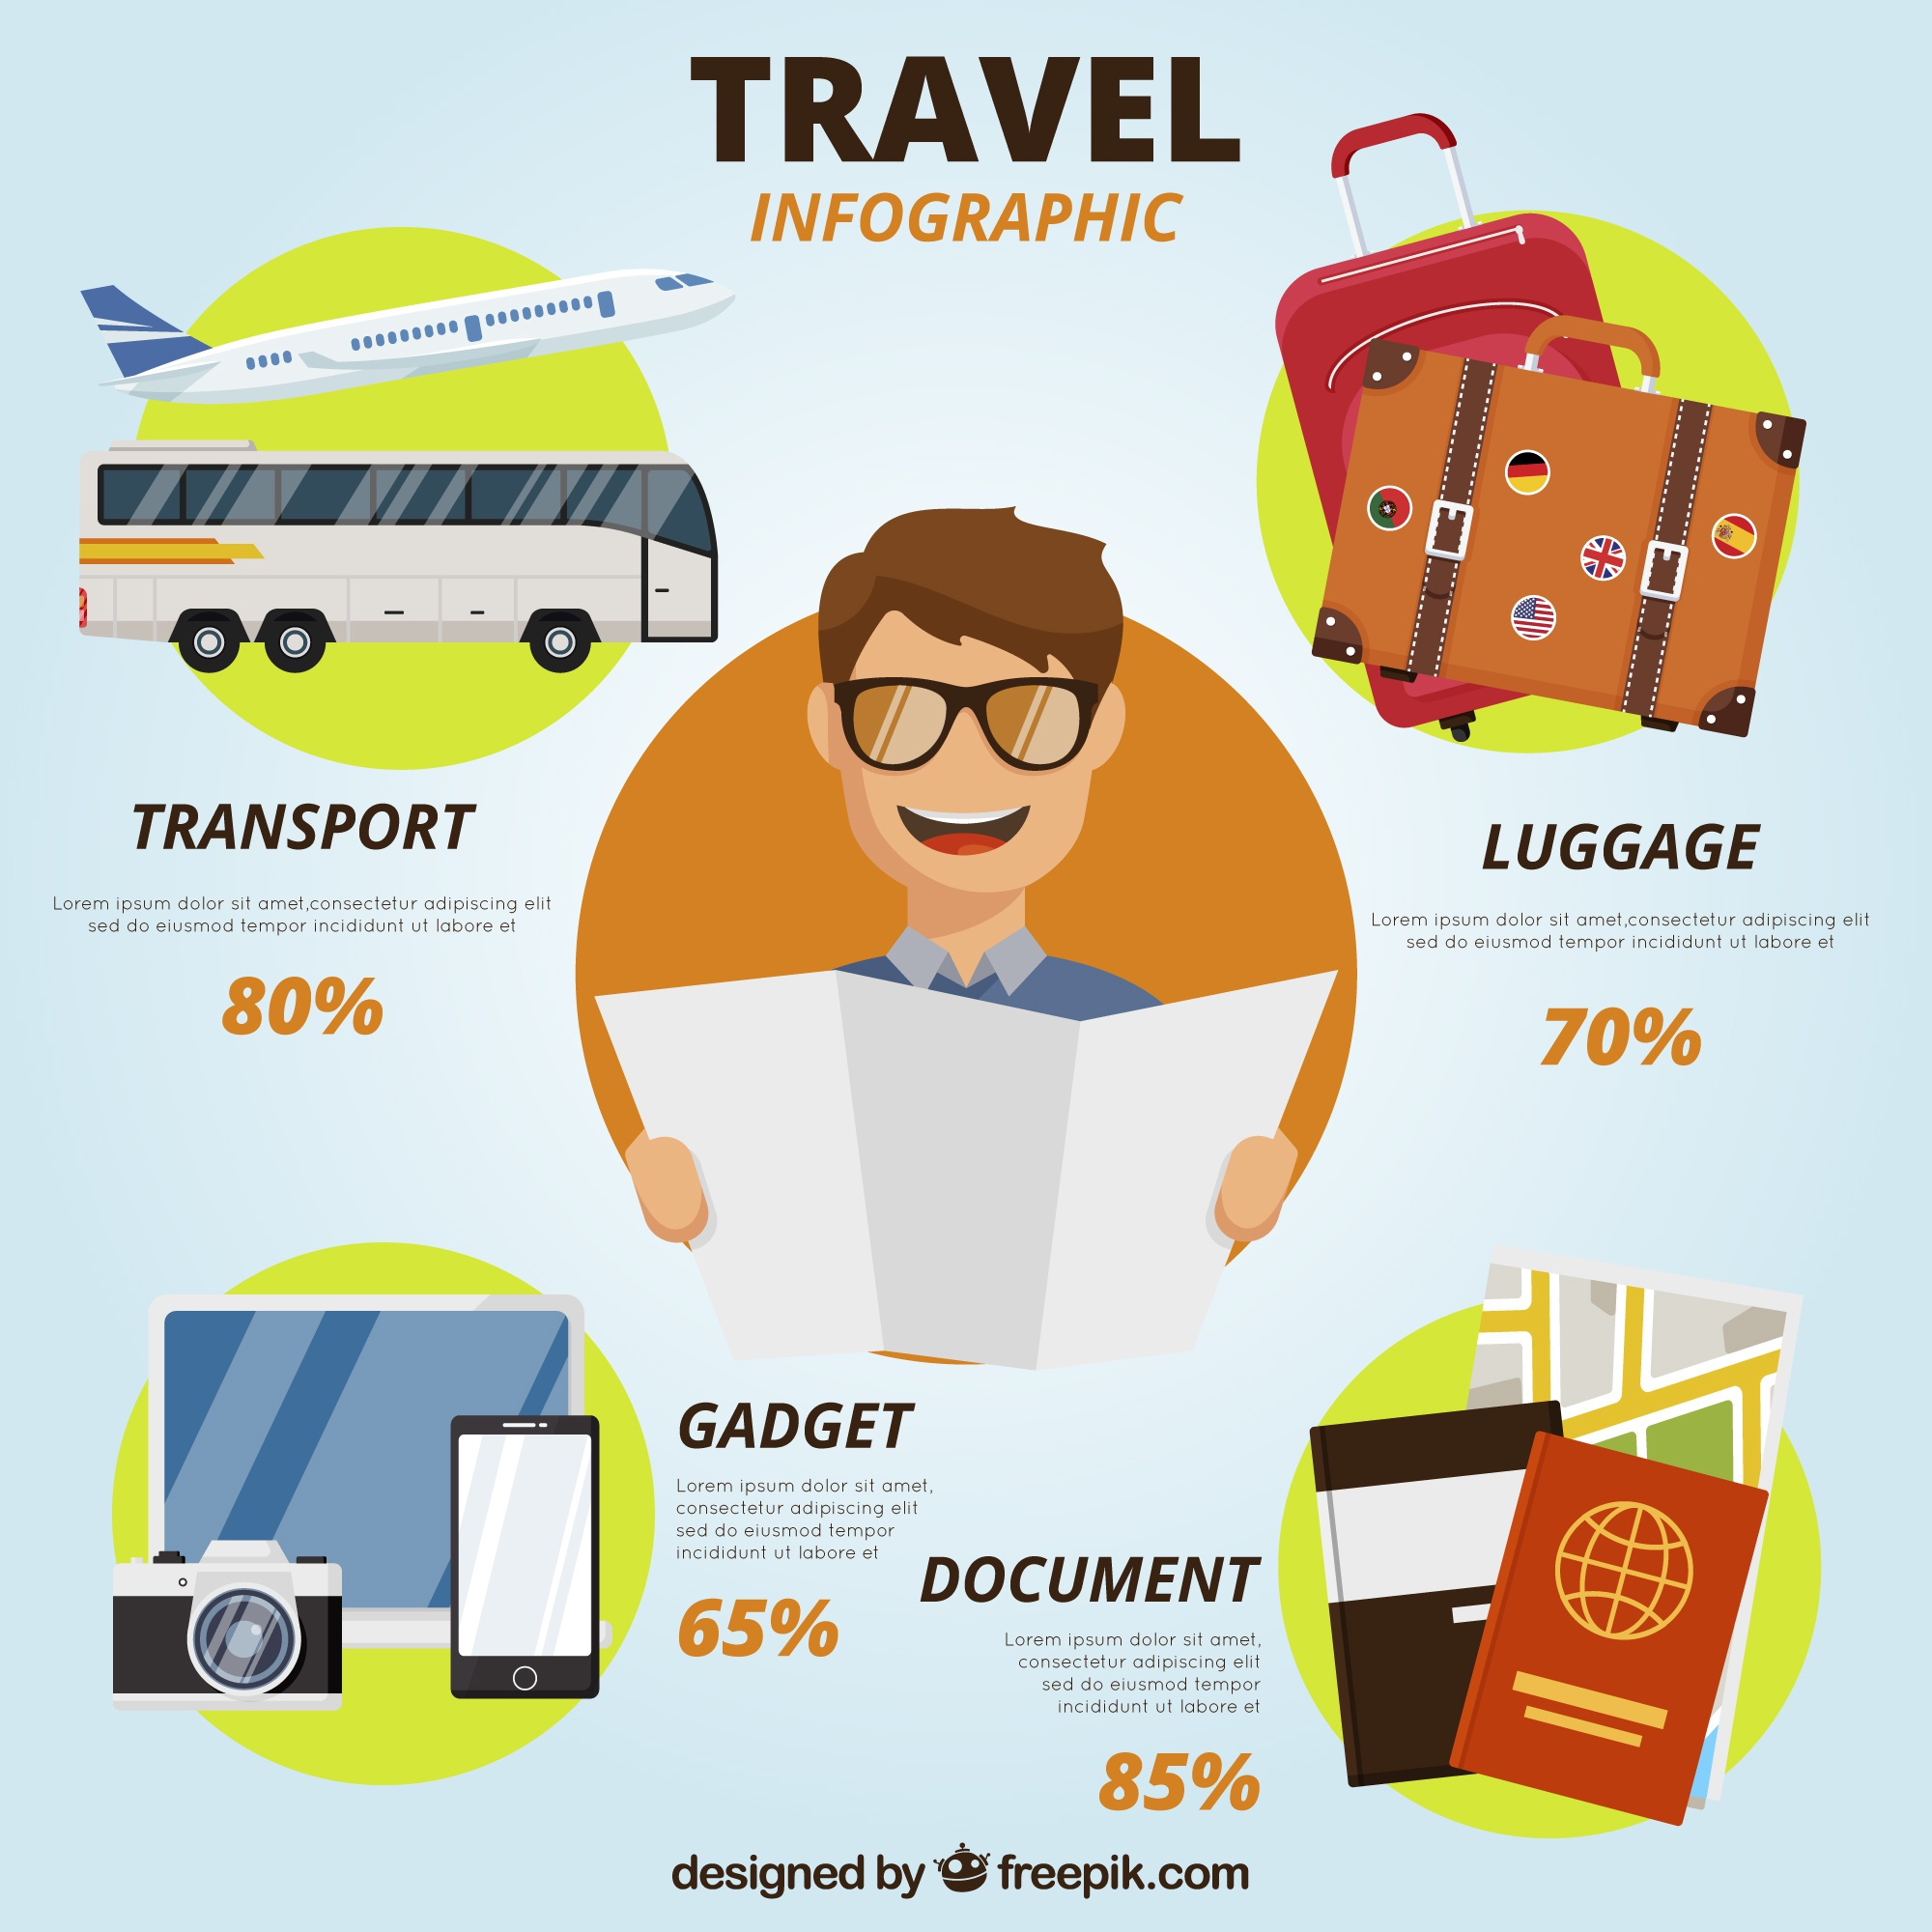 Travel infographic with smiling man and colorful elements